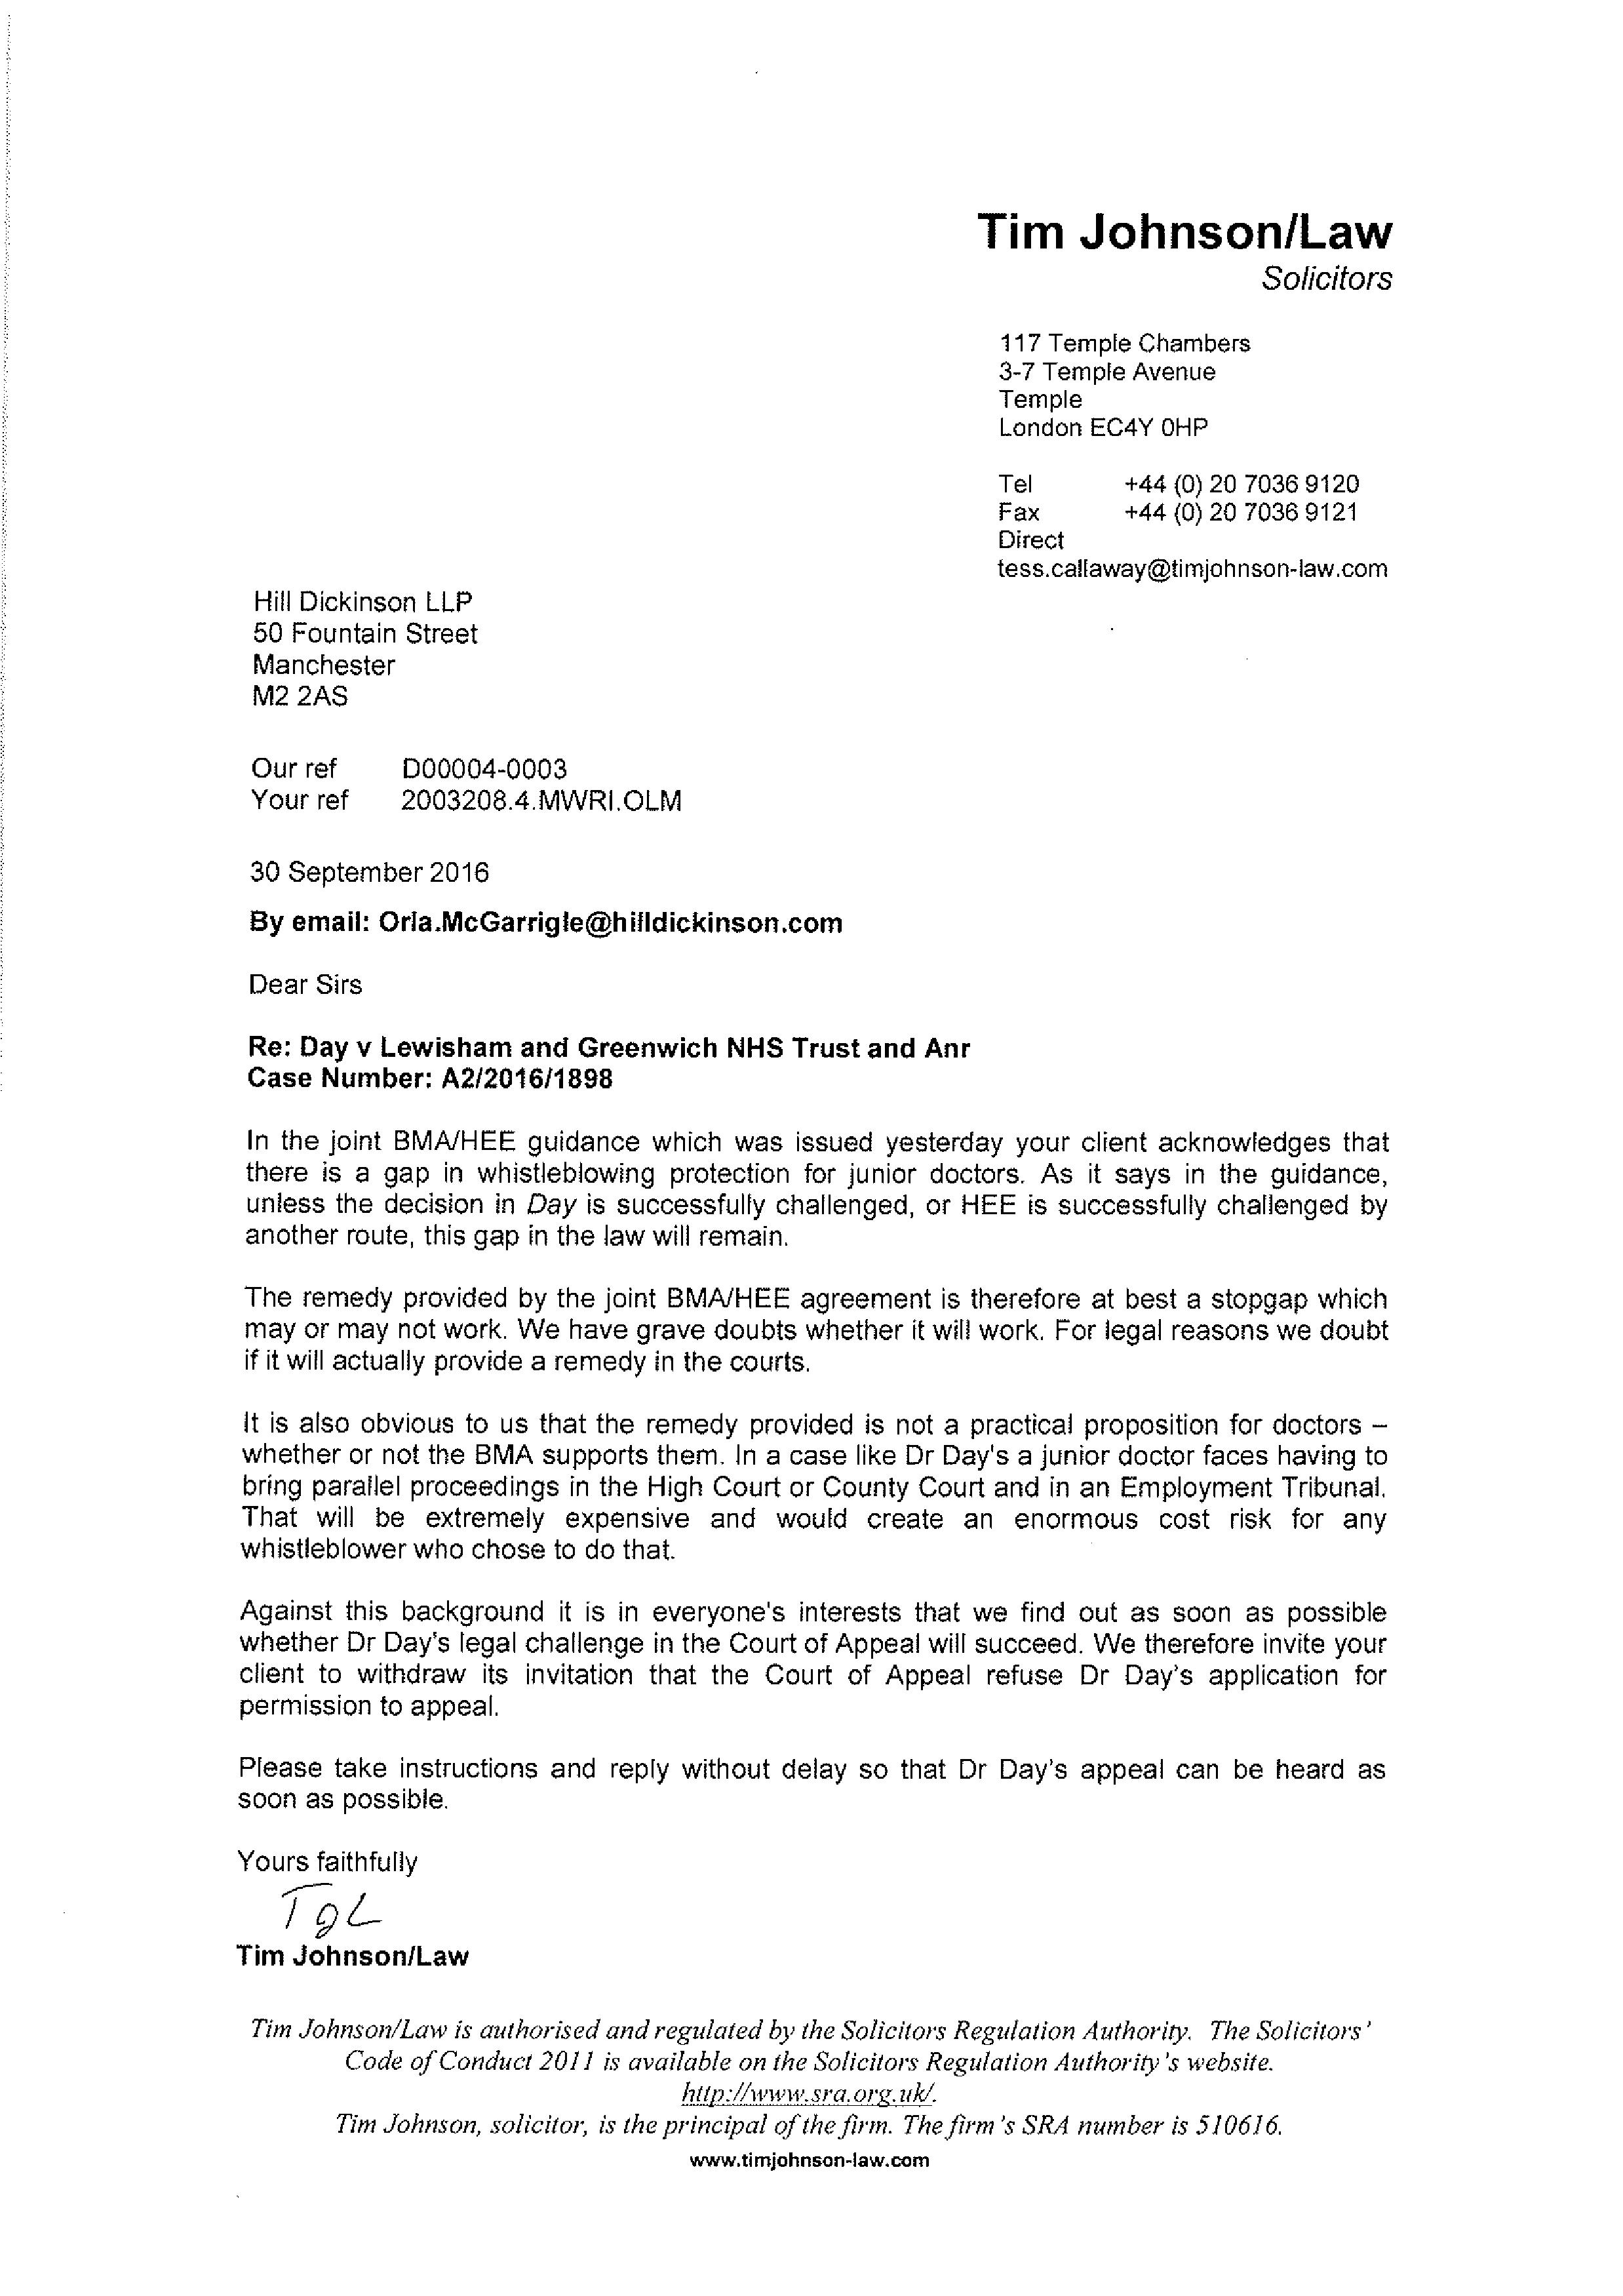 Appeal Letter Example